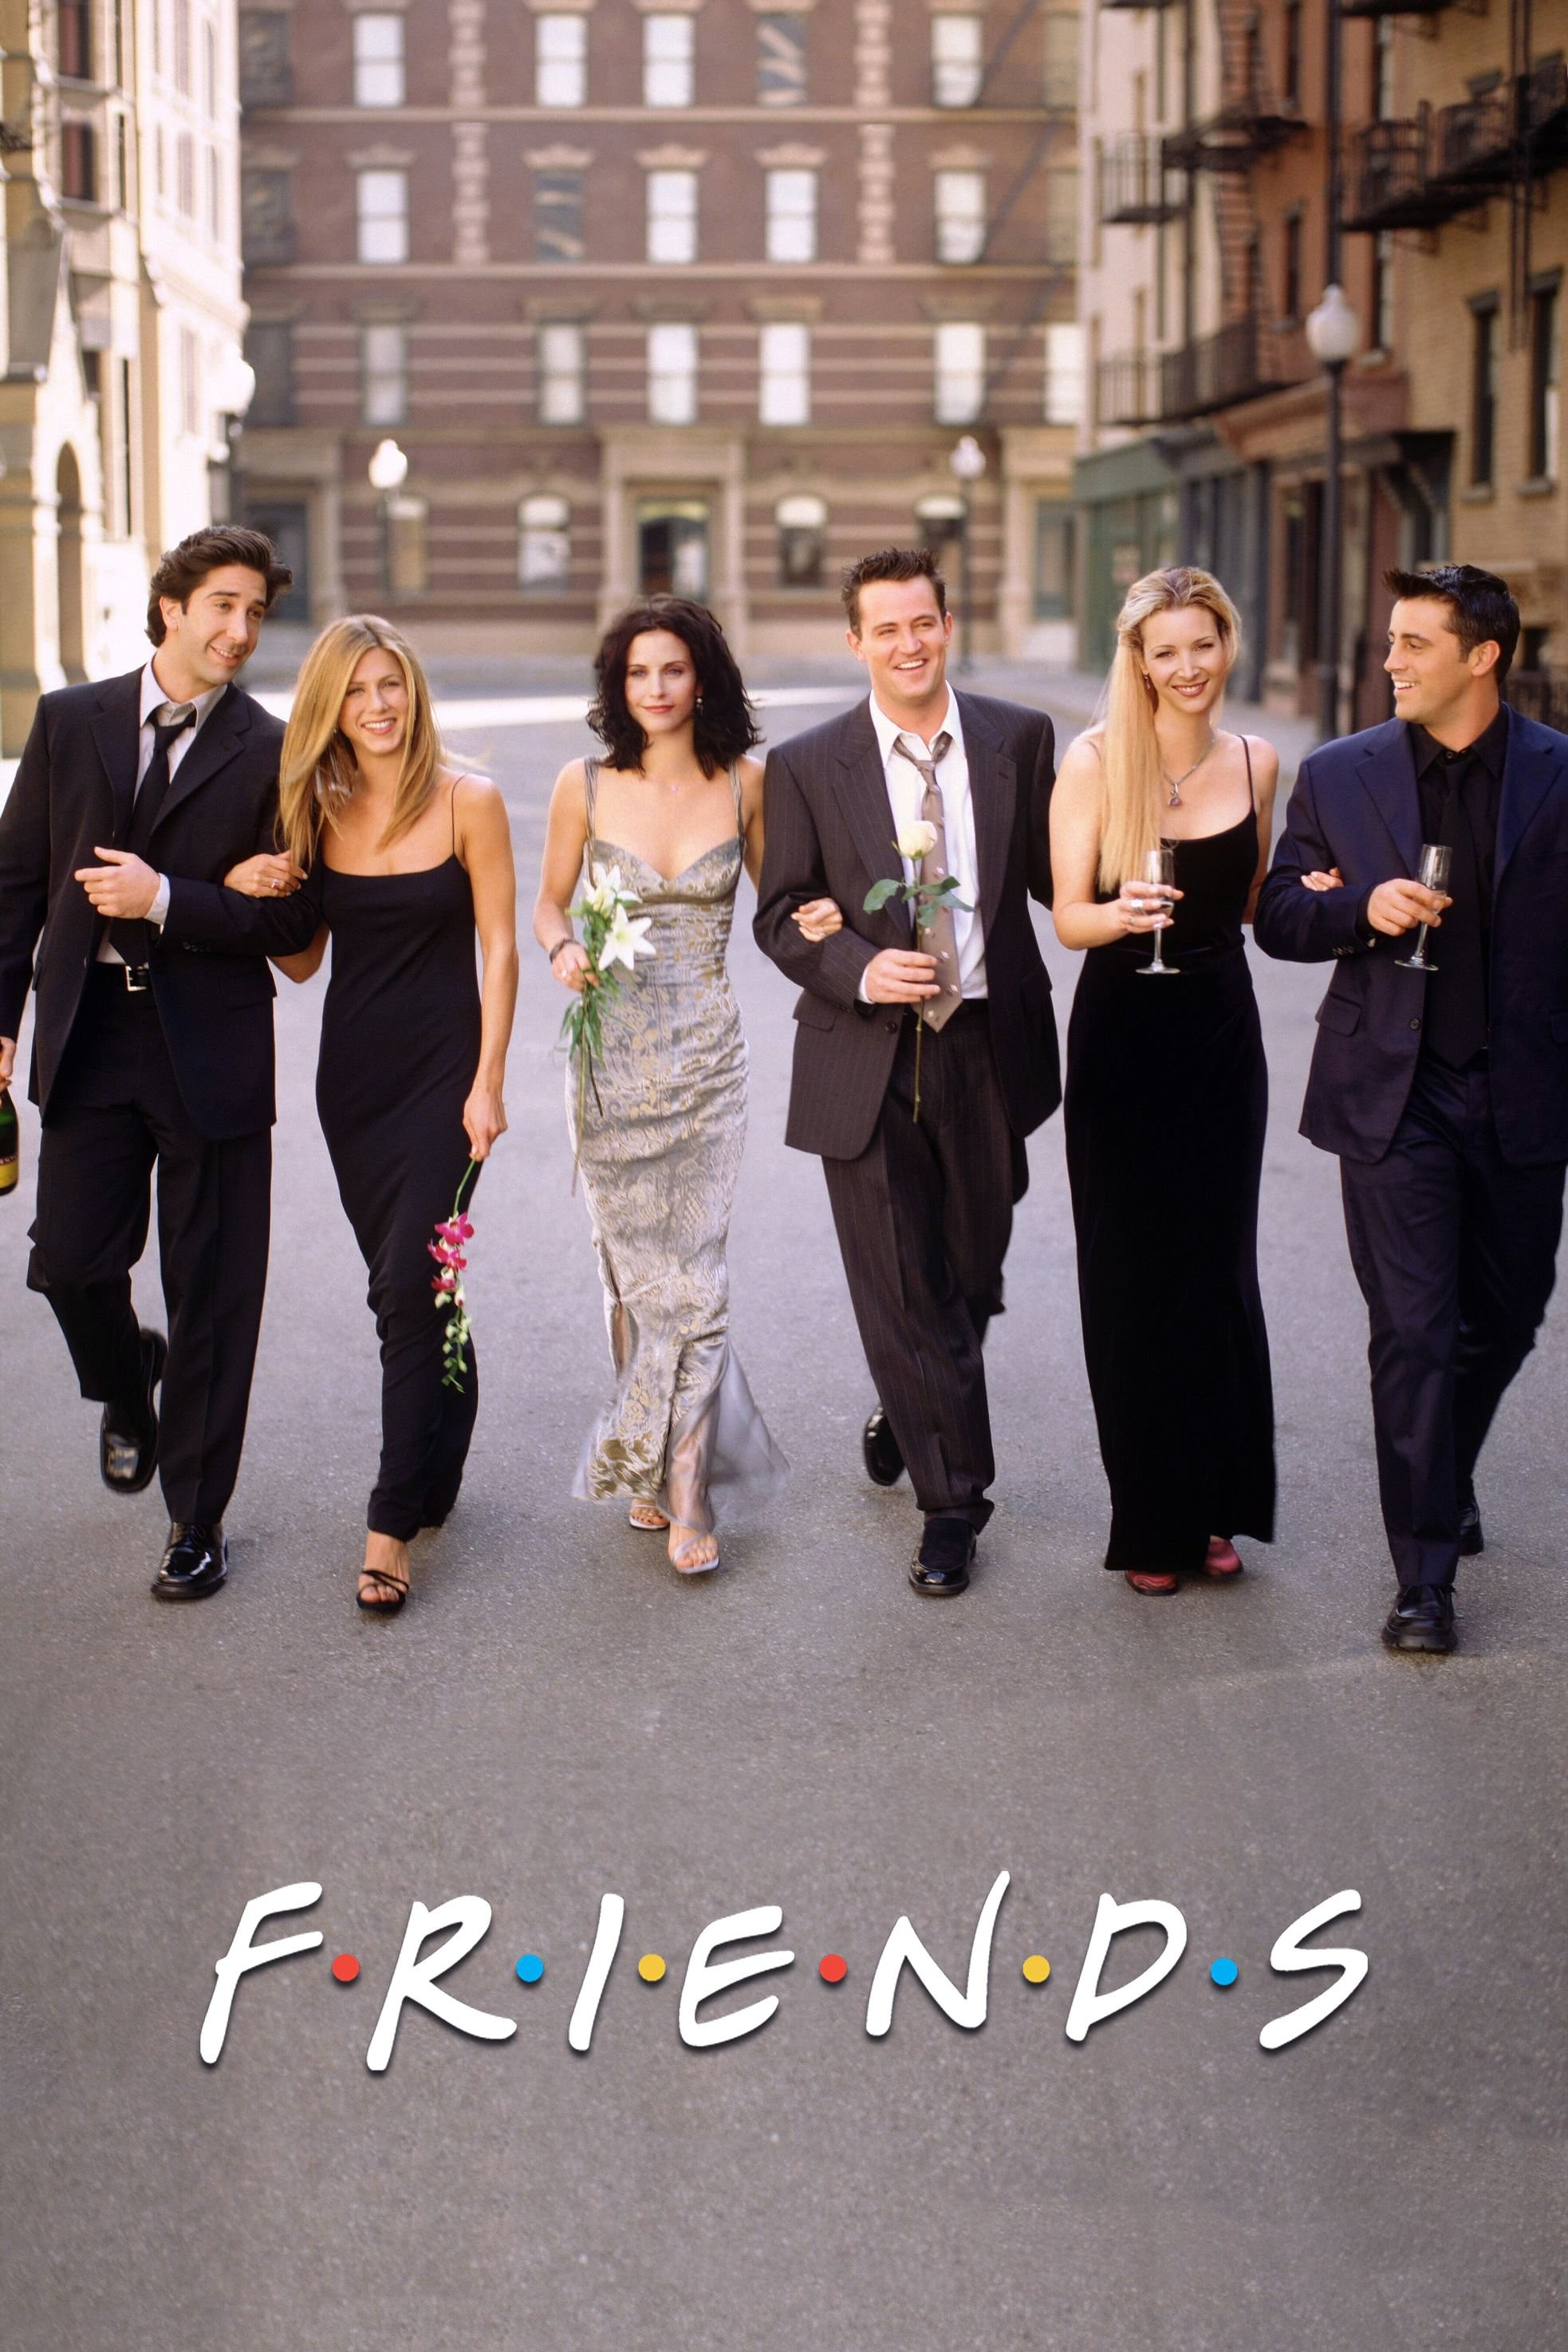 Citaten Uit Friends : Friends turns the most memorable quotes from the series